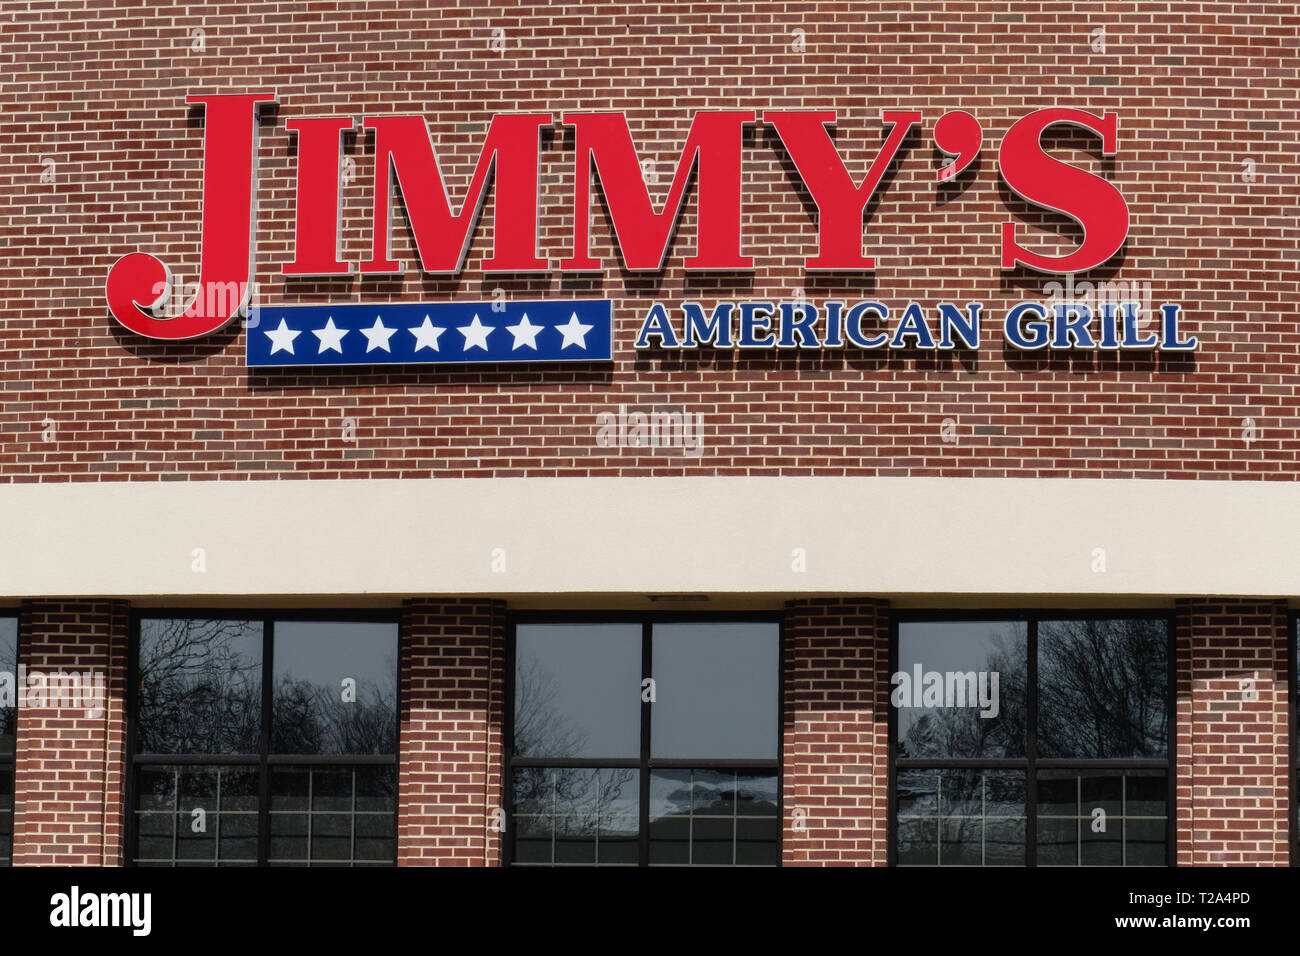 Bordentown, NJ - March 11, 2019: Jimmy's American Grill is a large restaurant boasting 35 TV screens as well as indoor and outdoor seating. - Stock Image